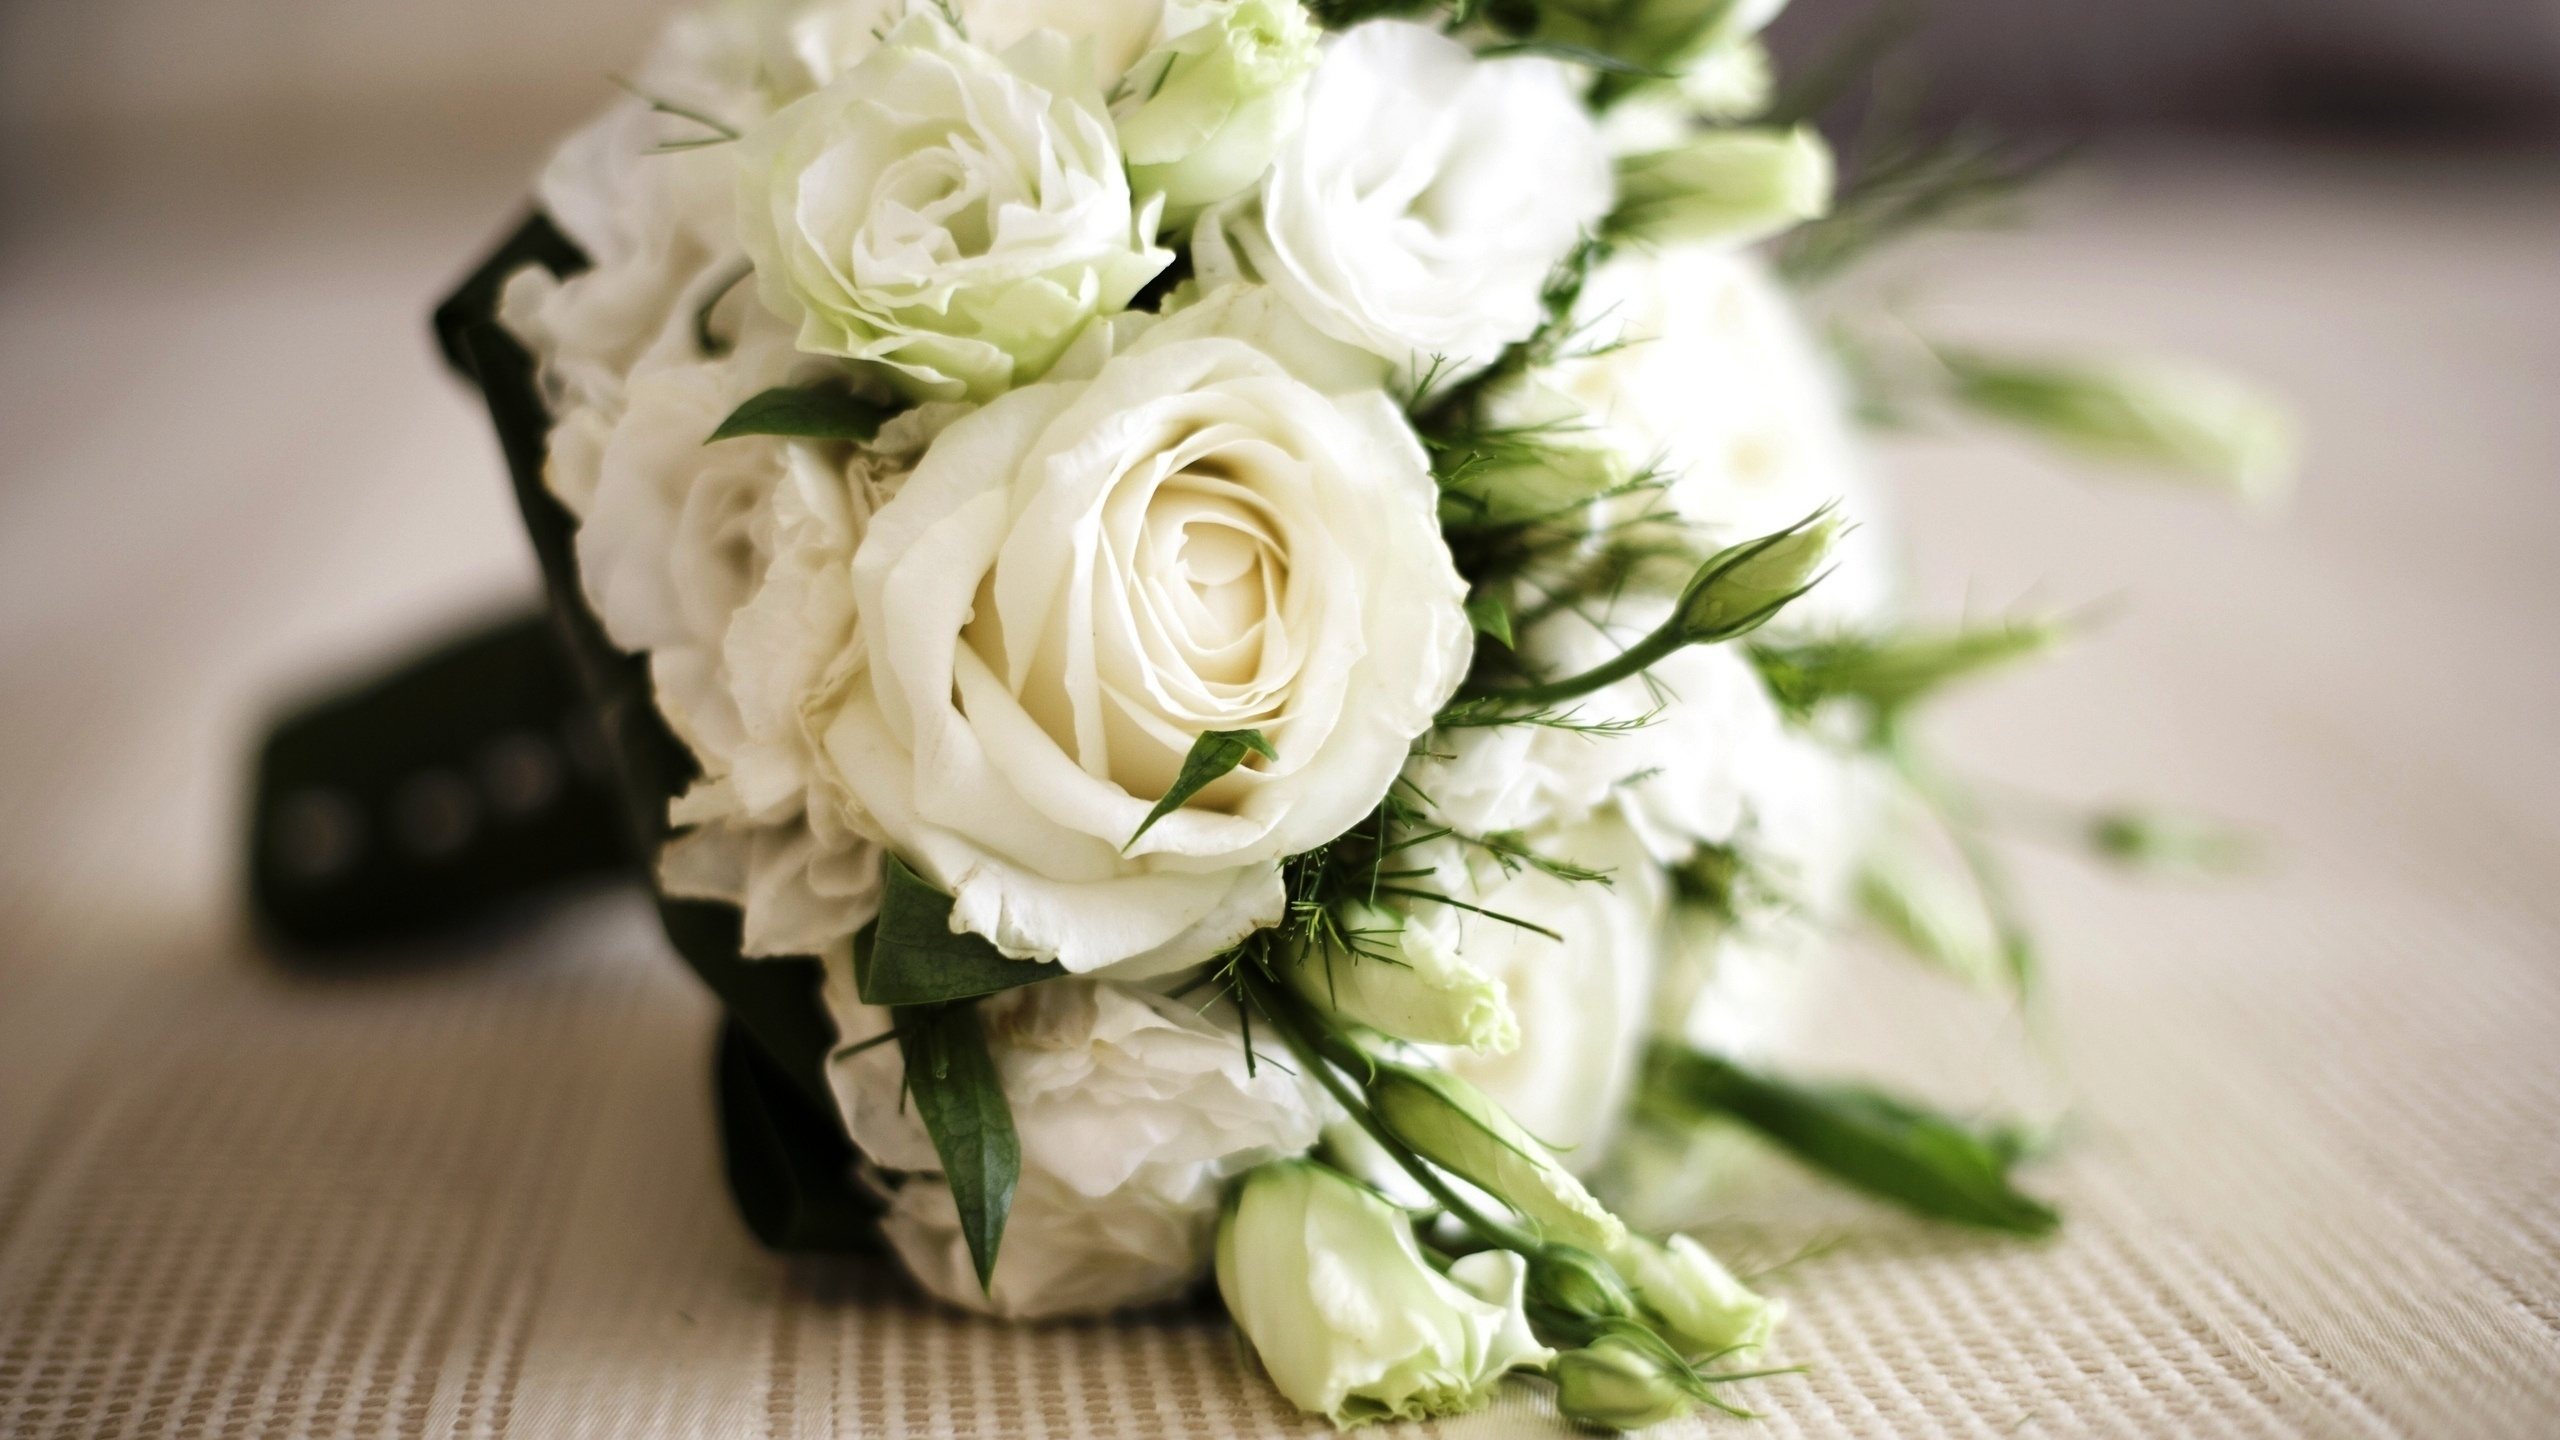 Bouquet of white roses wallpaper - 2560x1440